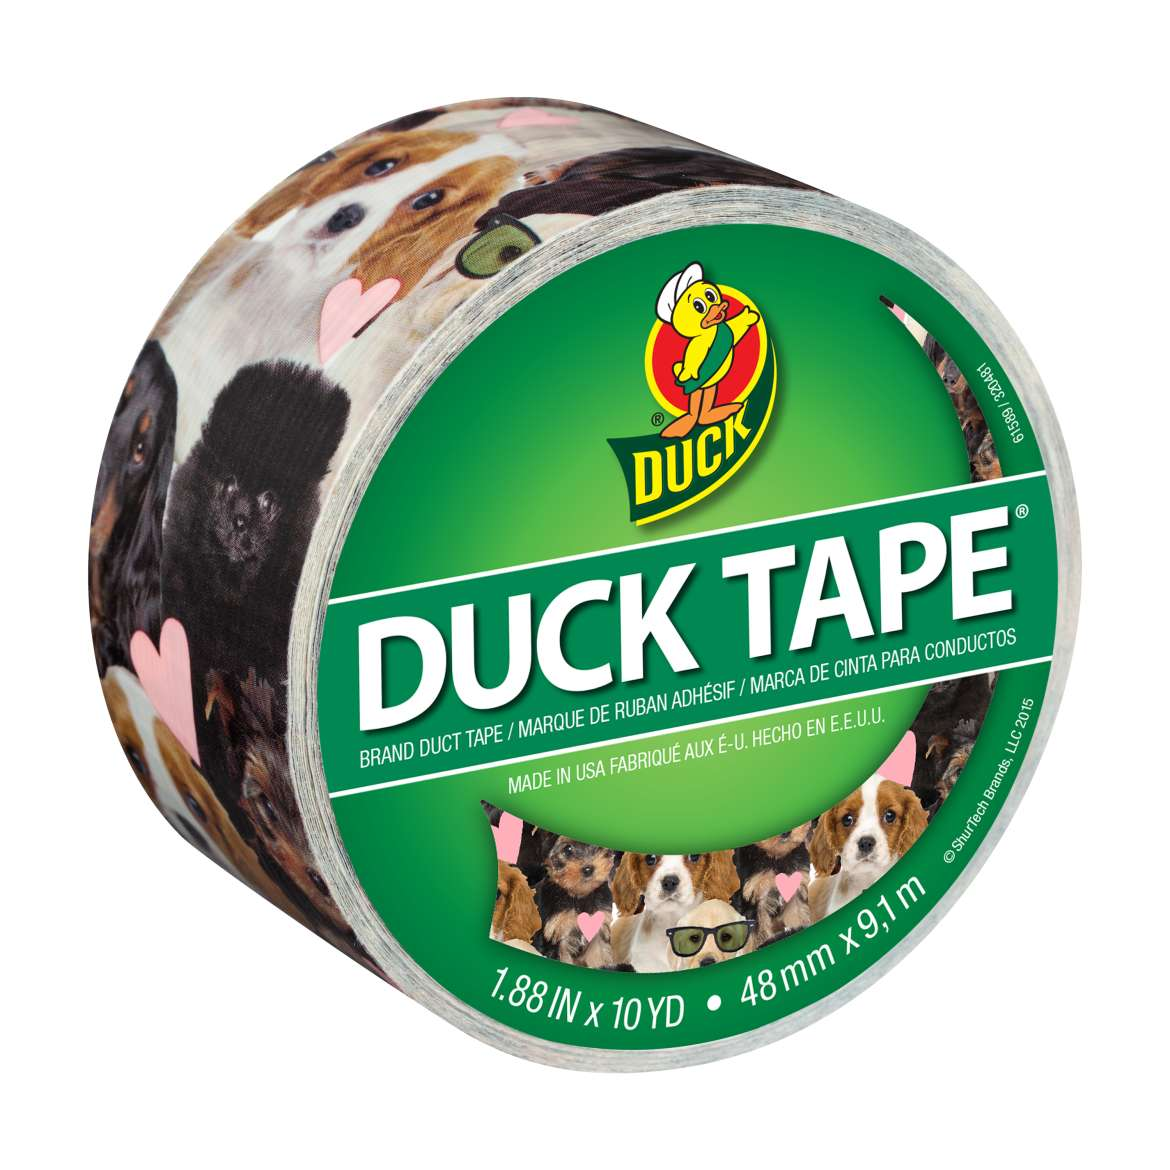 Printed Duck Tape® Brand Duct Tape - Puppy Potpourri, 1.88 in. x 10 yd. Image